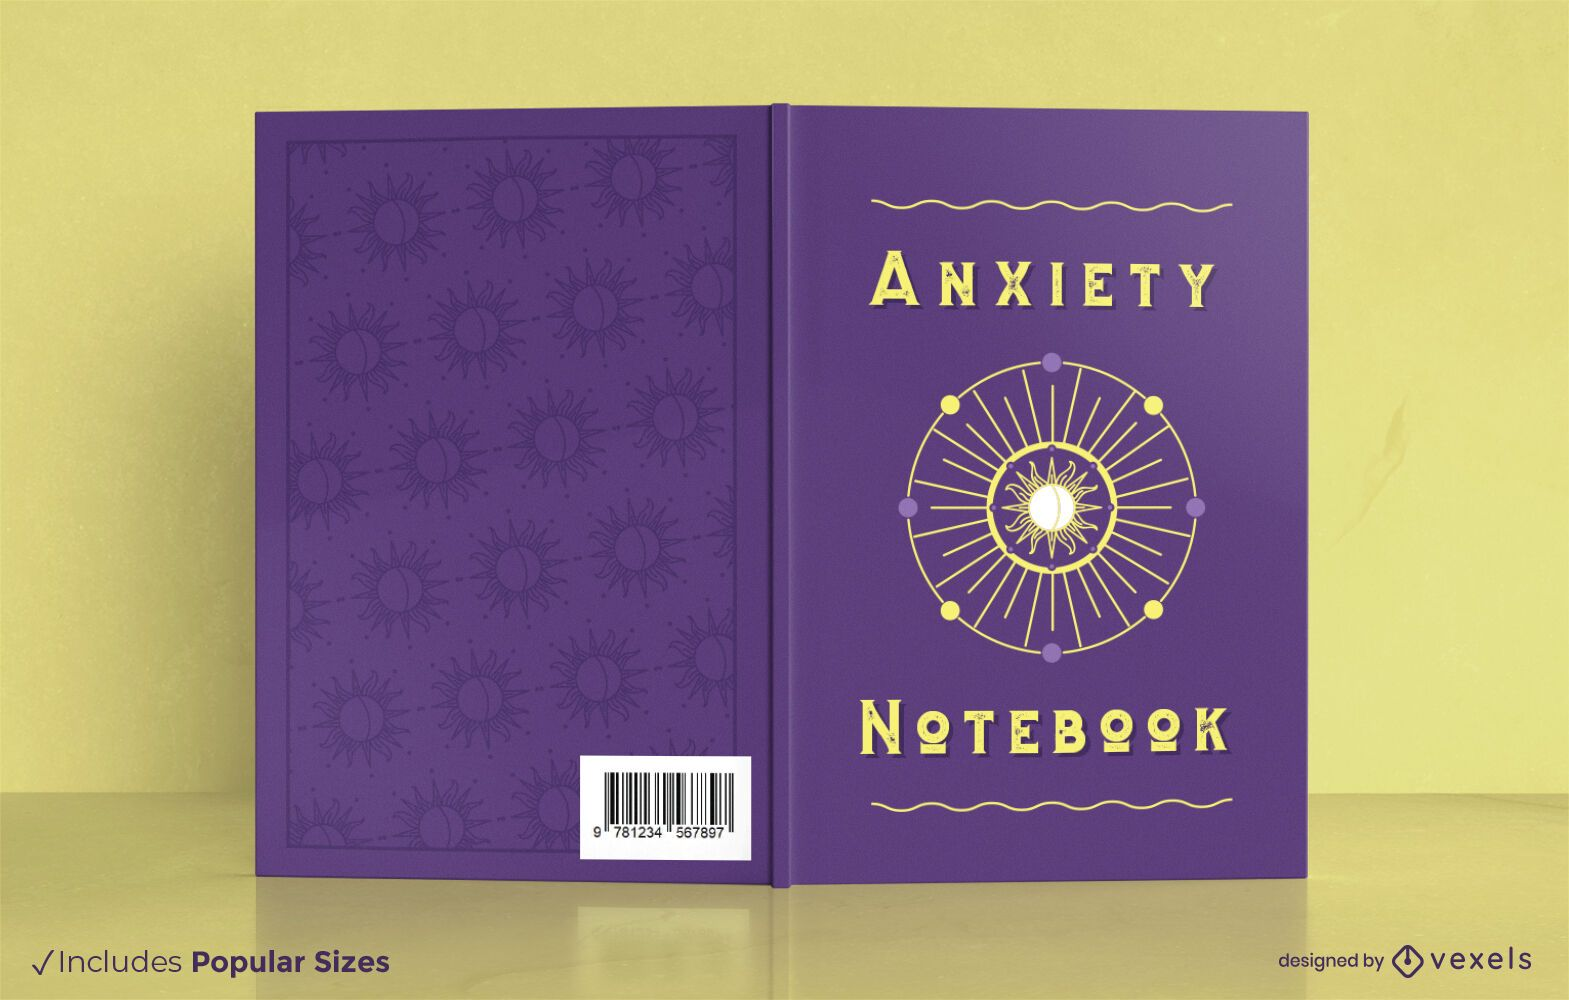 Anxiety notebook cover design